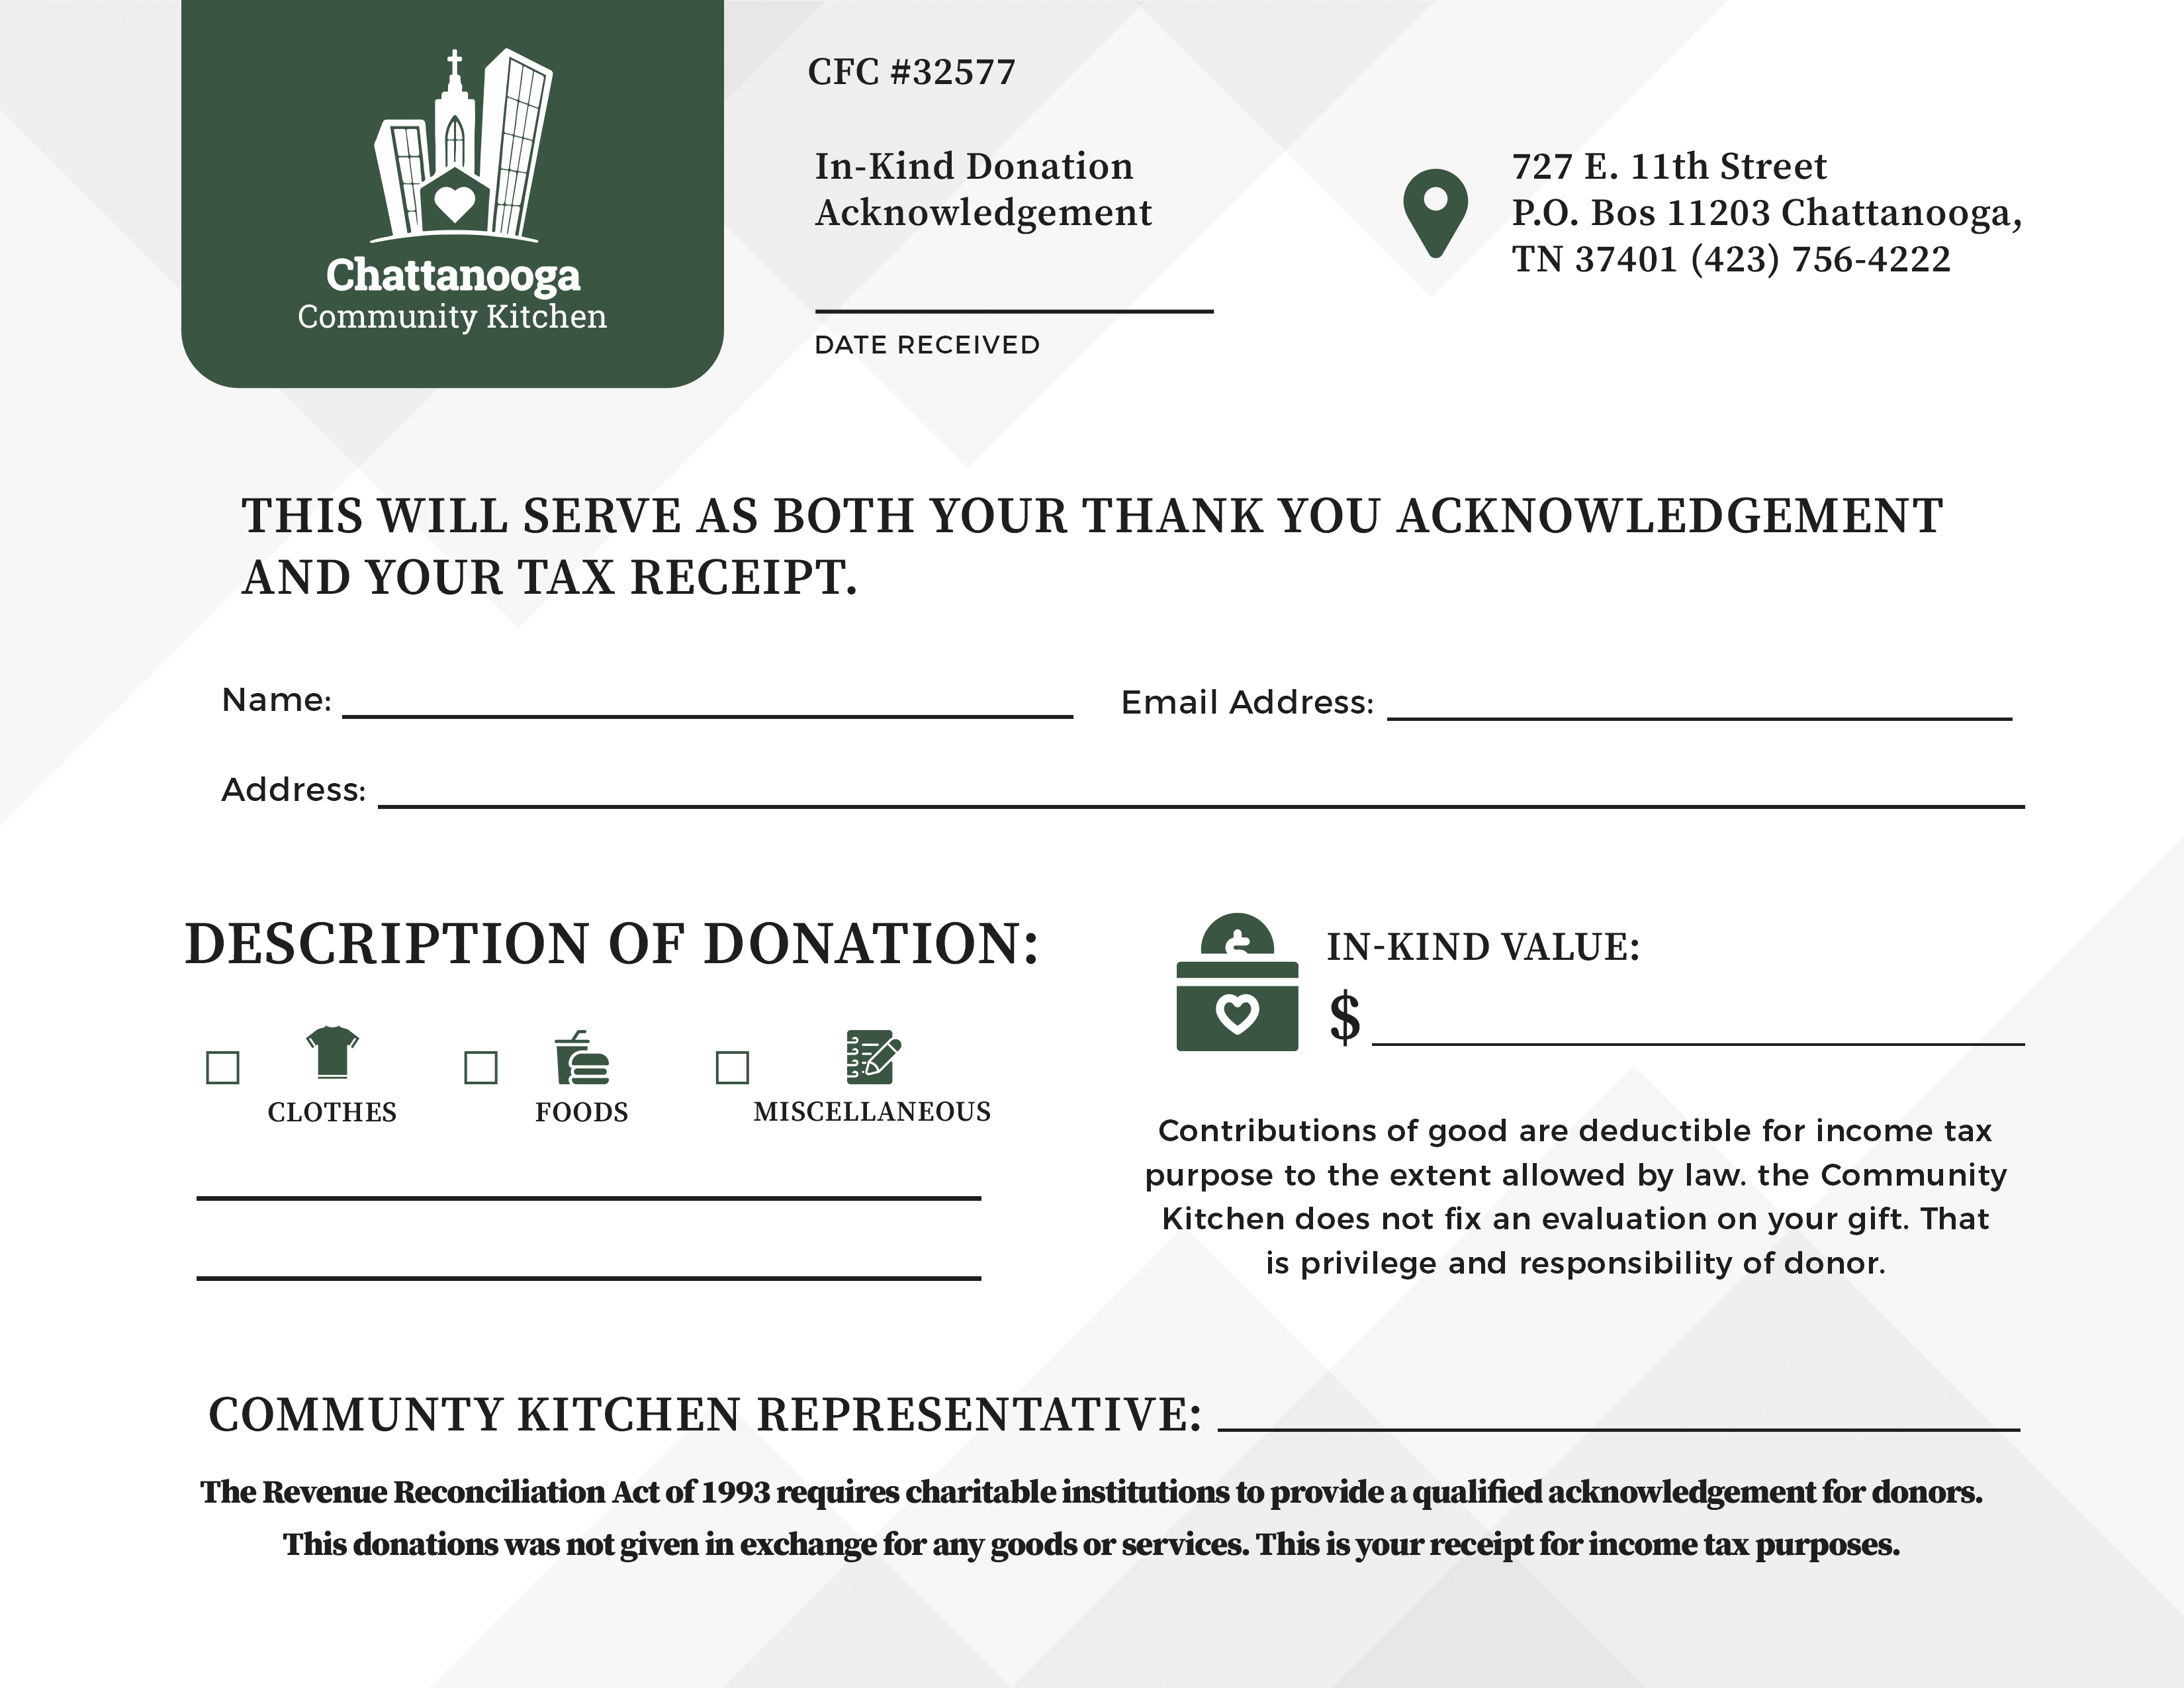 Chattanooga Community Kitchen - In Kind Donation Receipt Layout